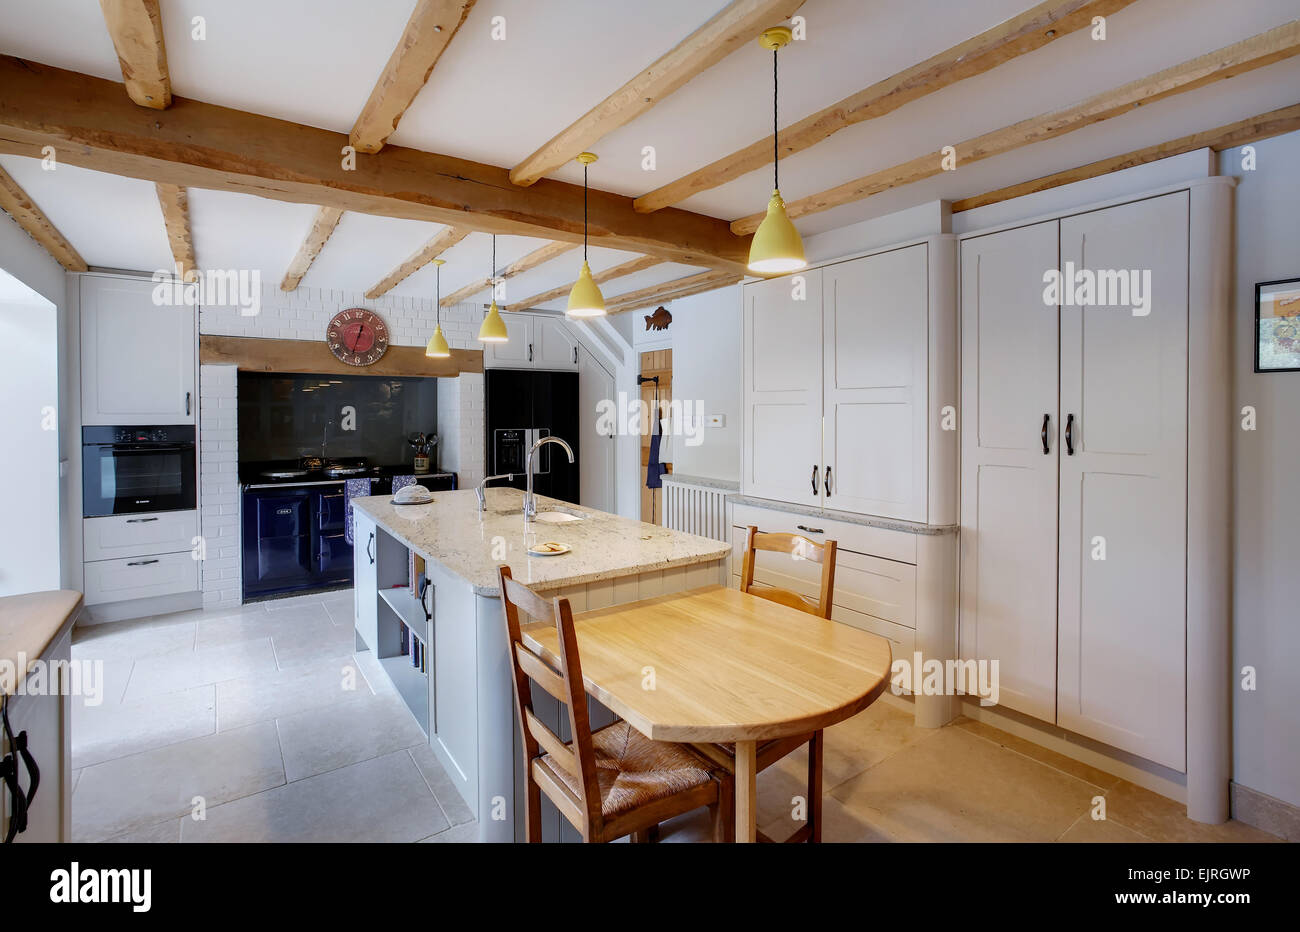 Farmhouse Kitchen Tables Uk A Traditional Style Kitchen Inside A Farmhouse In The Uk Stock